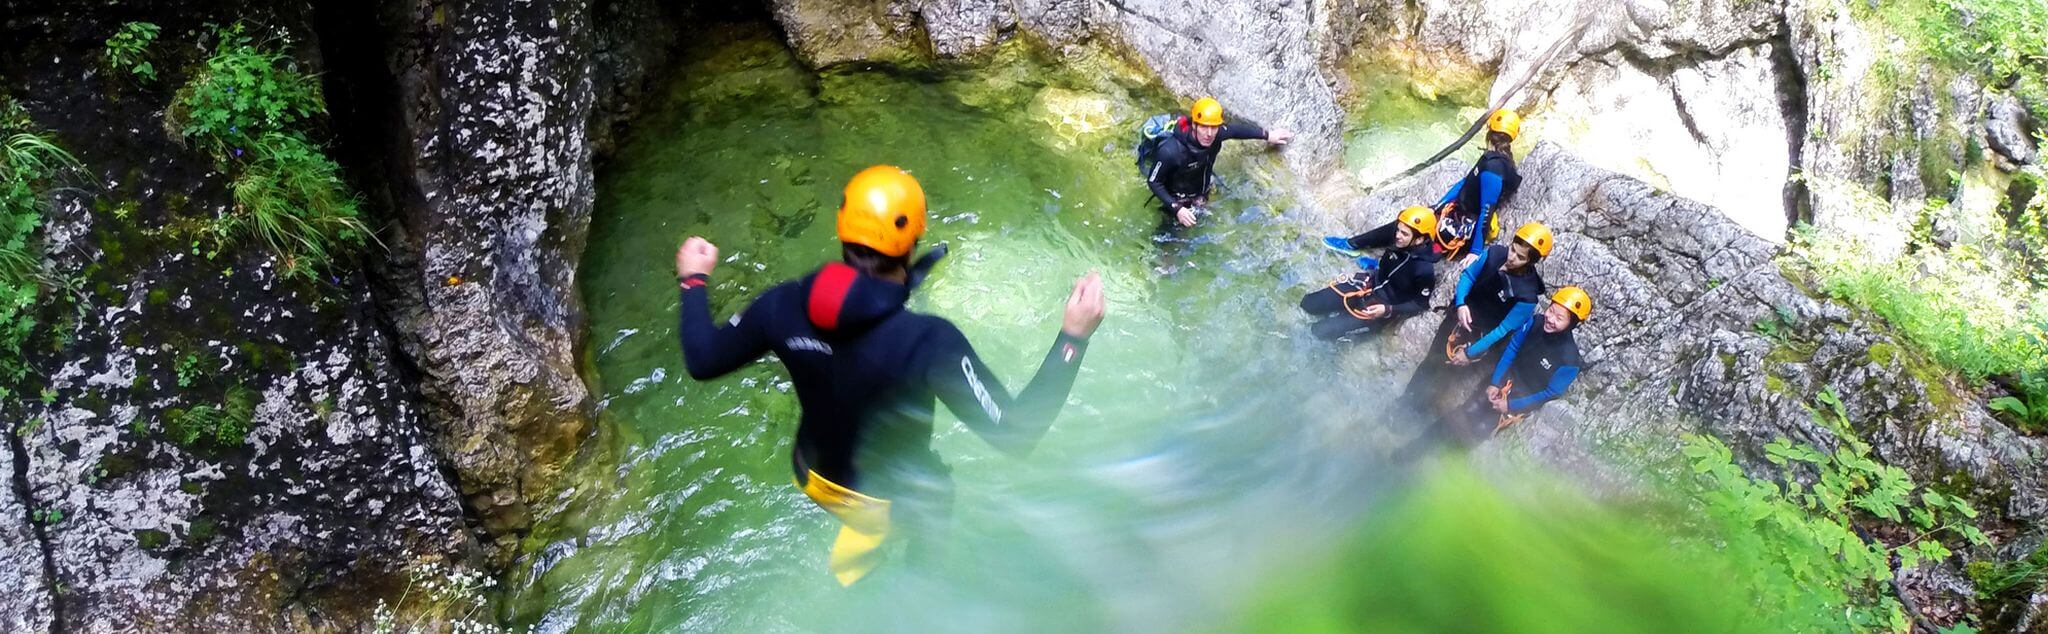 Canyoning in Utiel